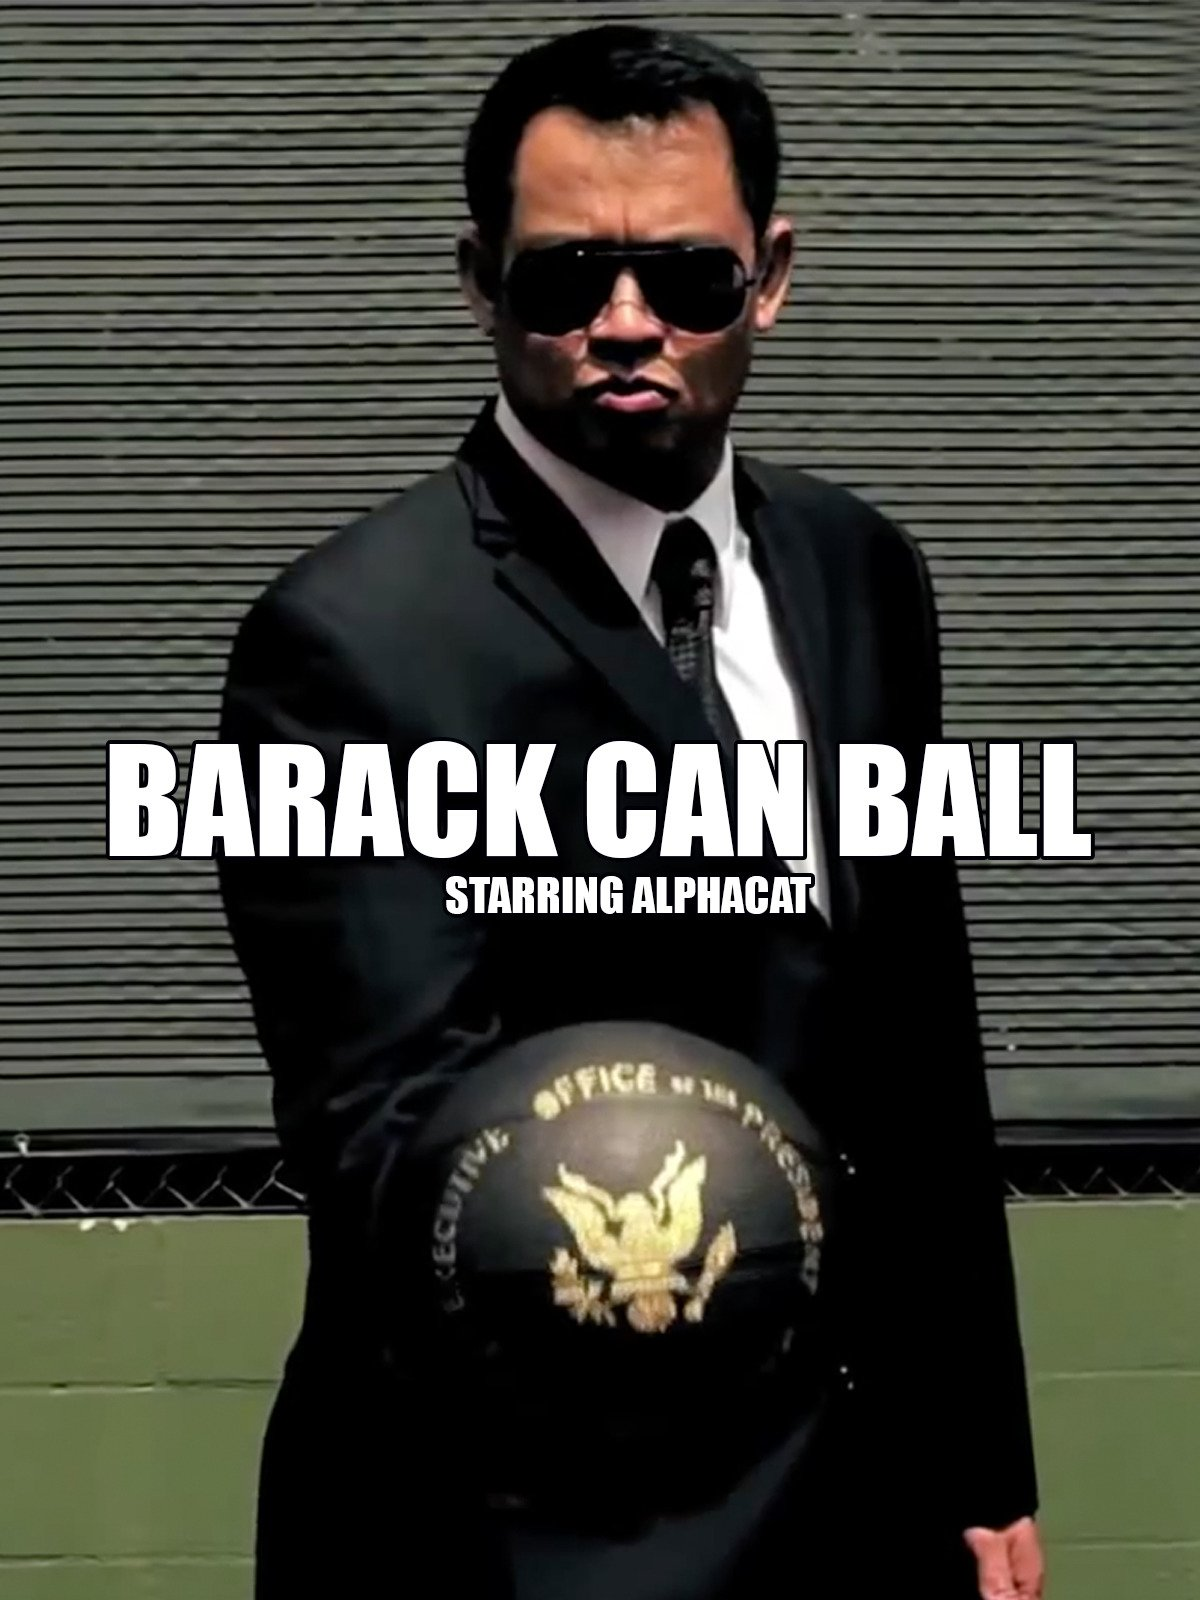 Barack Can Ball starring AlphaCat